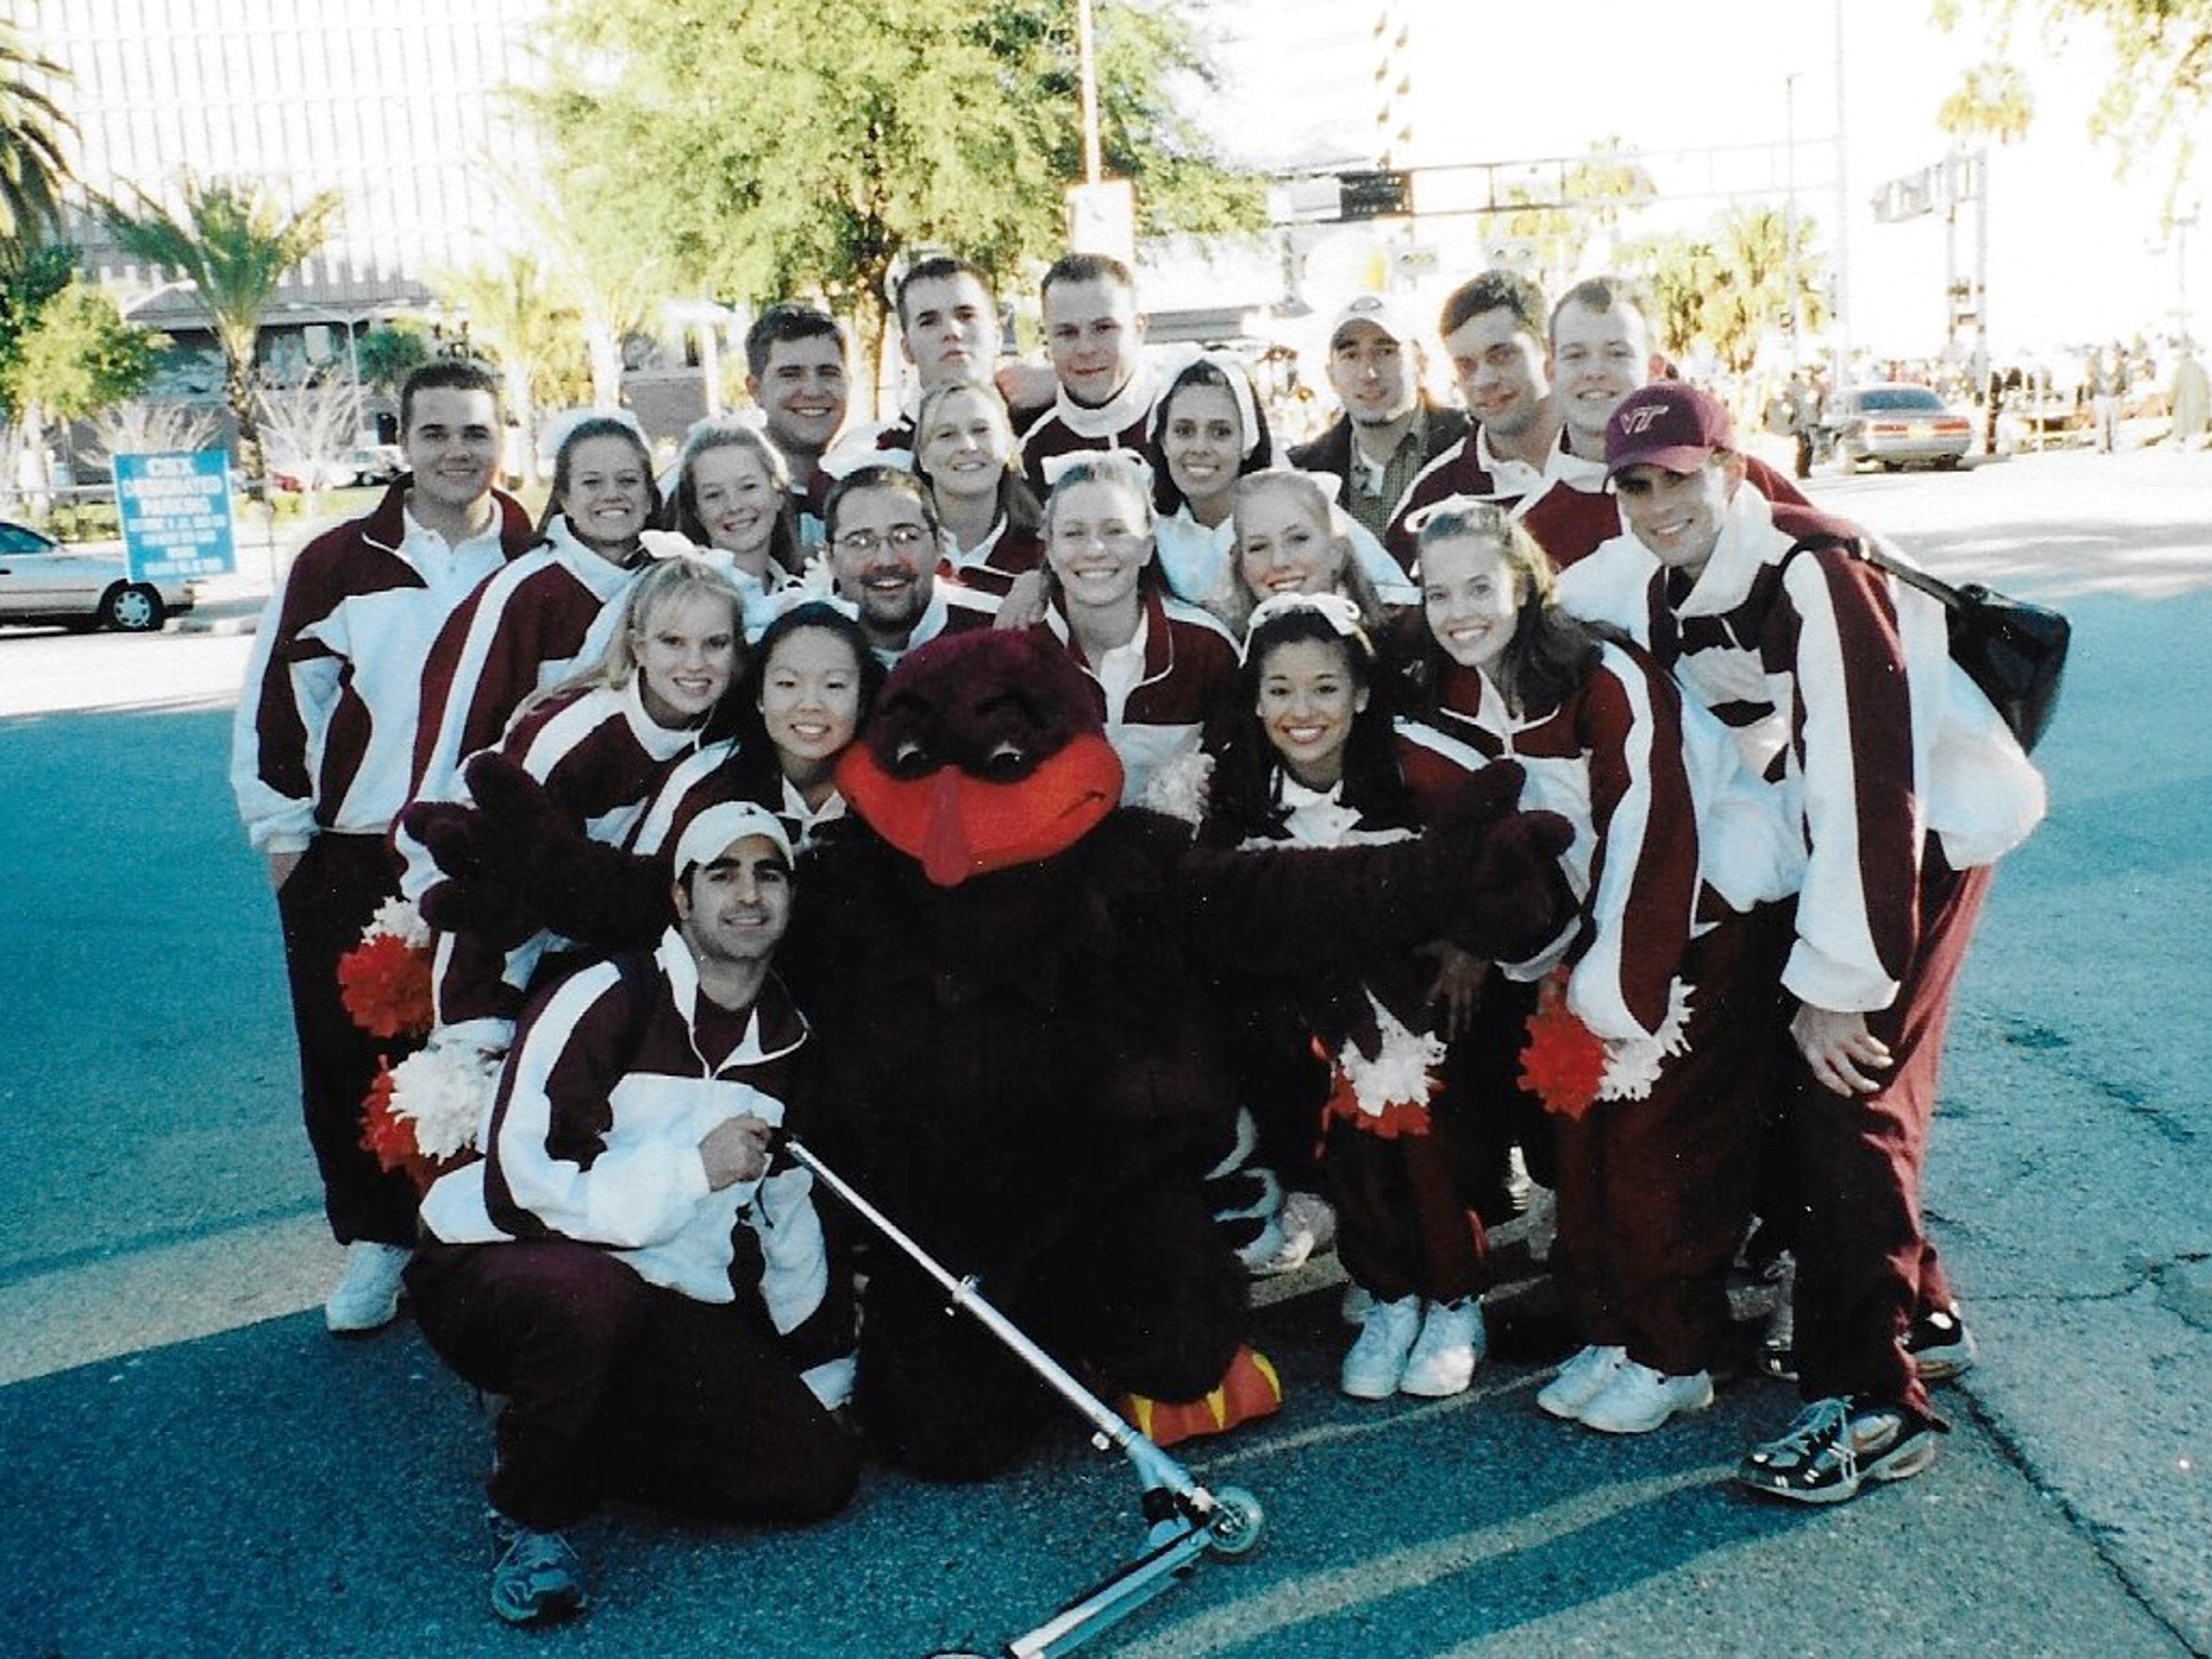 Corey Campbell in the Hokie Bird costume along with the Virginia Tech cheerleaders before the 1998 Gator Bowl in Jacksonville Florida.